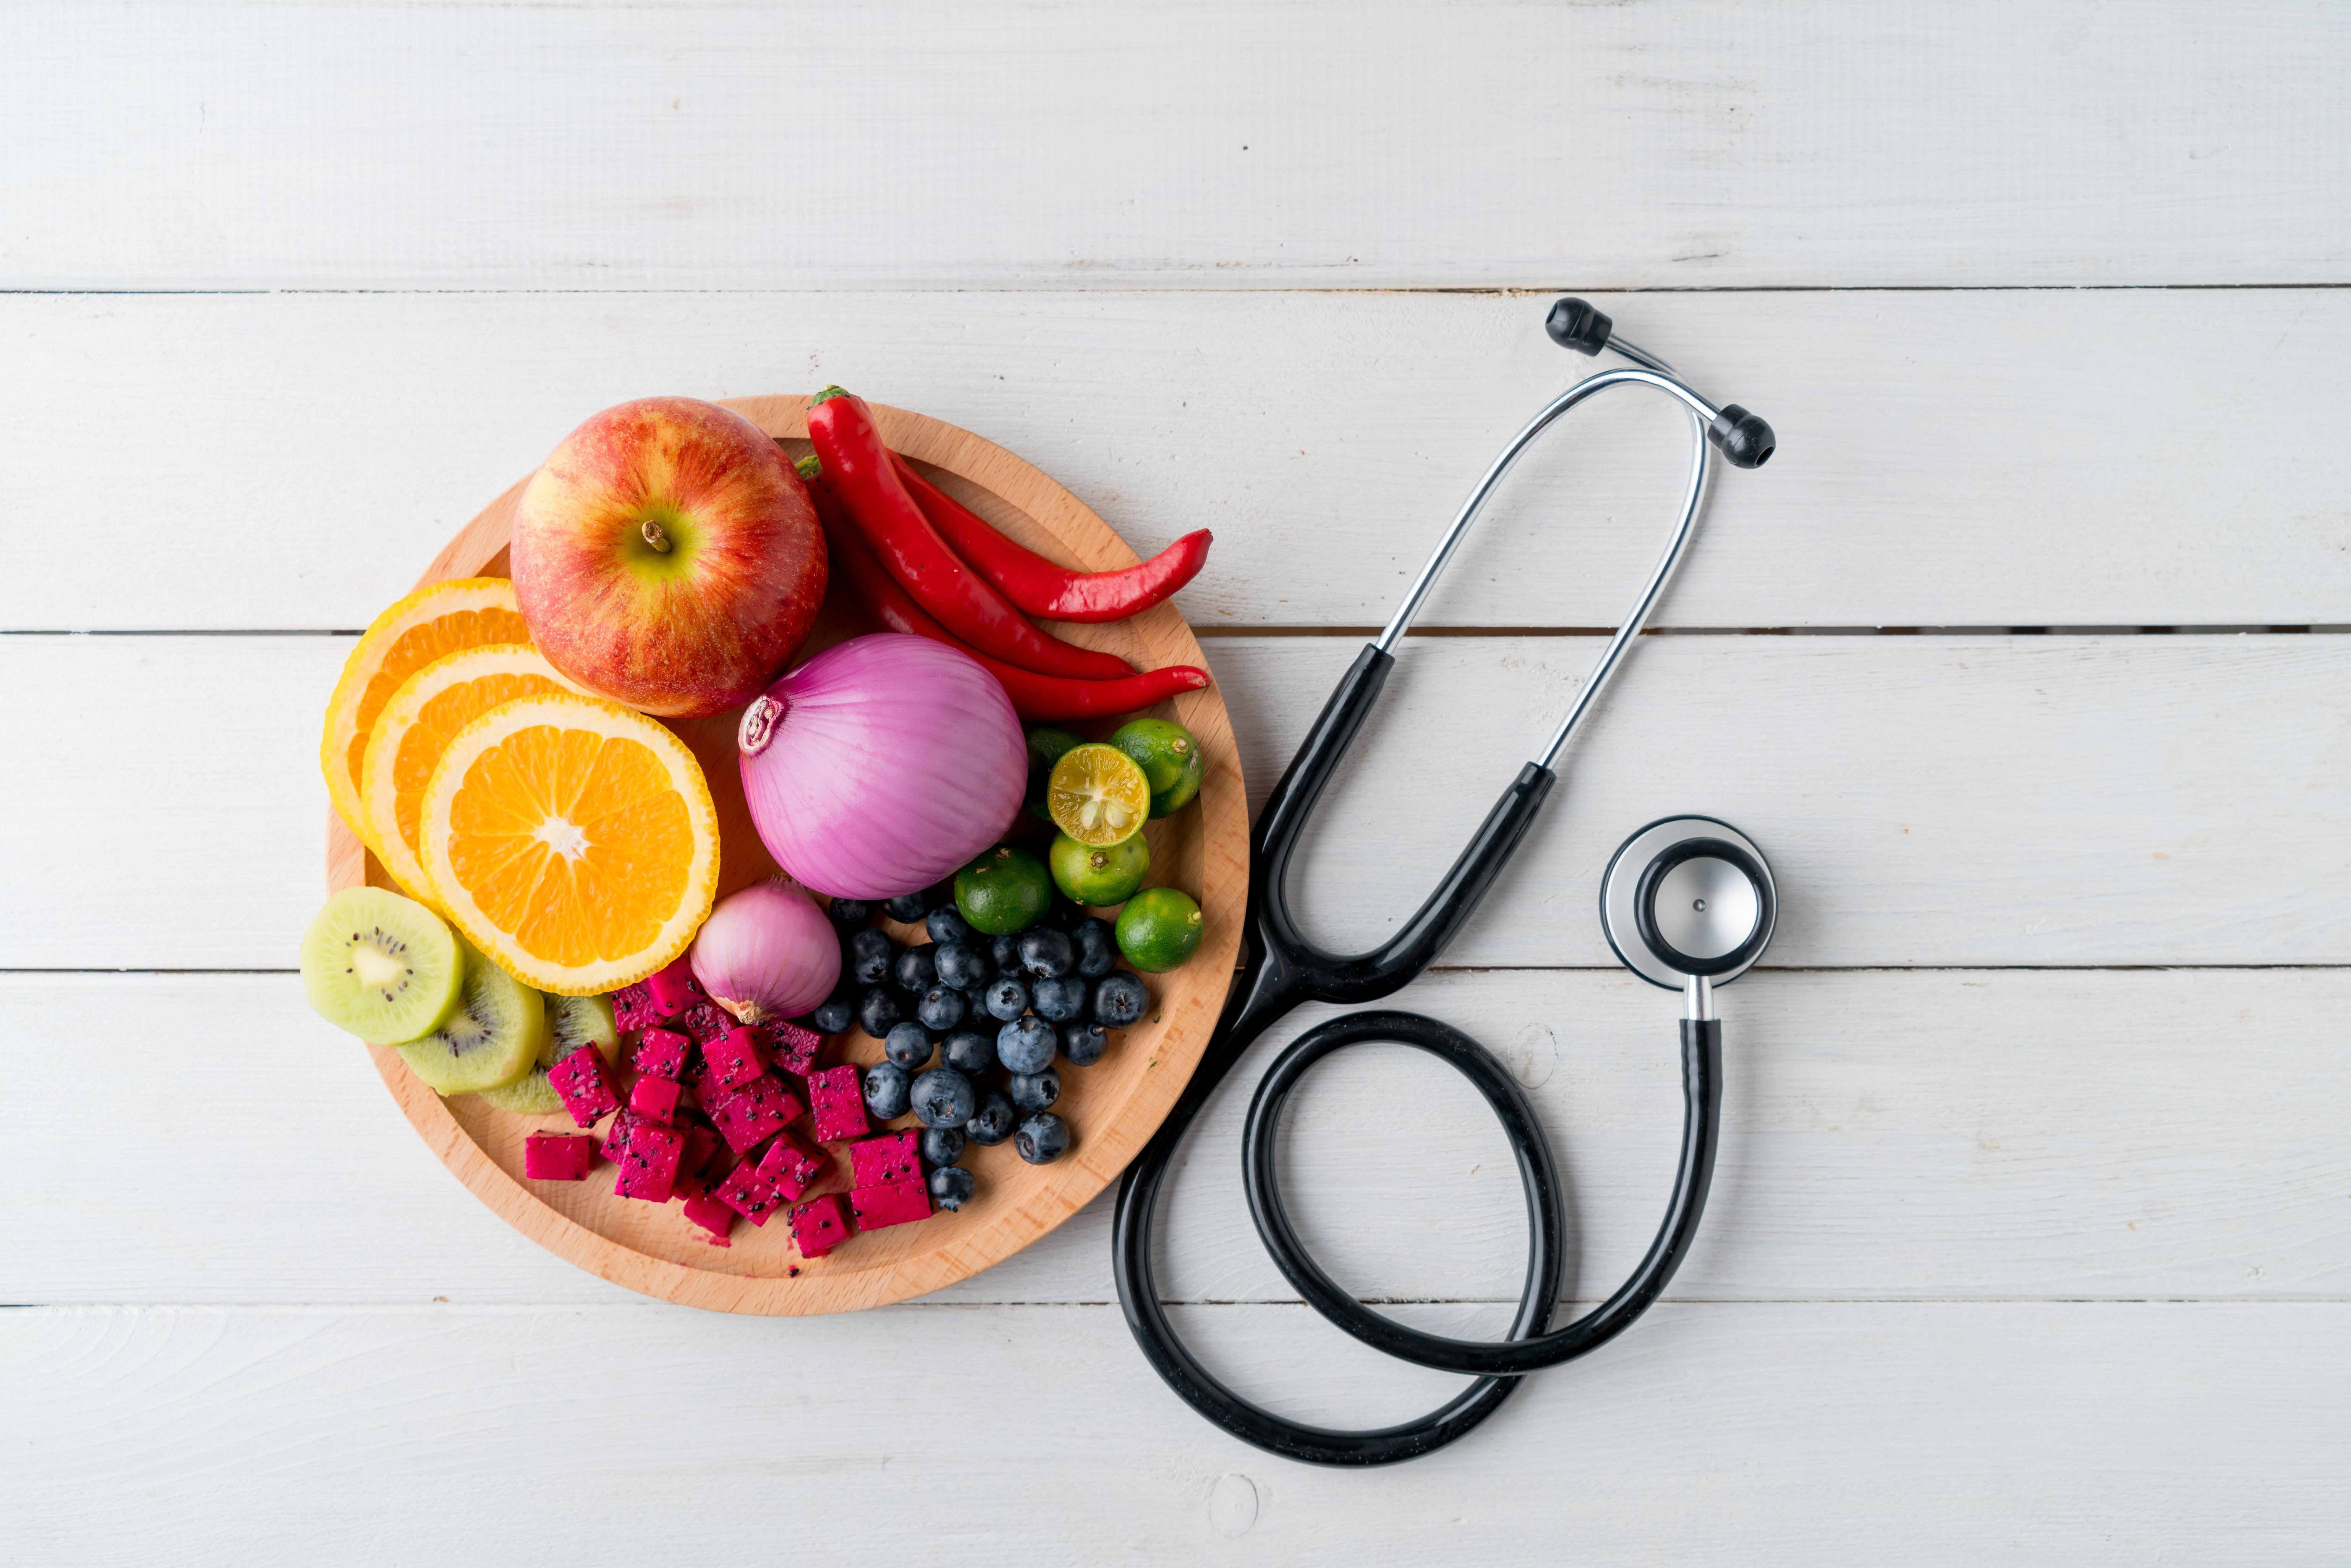 Culinary medicine enables doctors to talk with patients about how nutrition and food choices affect theirhealthand prescribe easy, actionable, edible solutions.